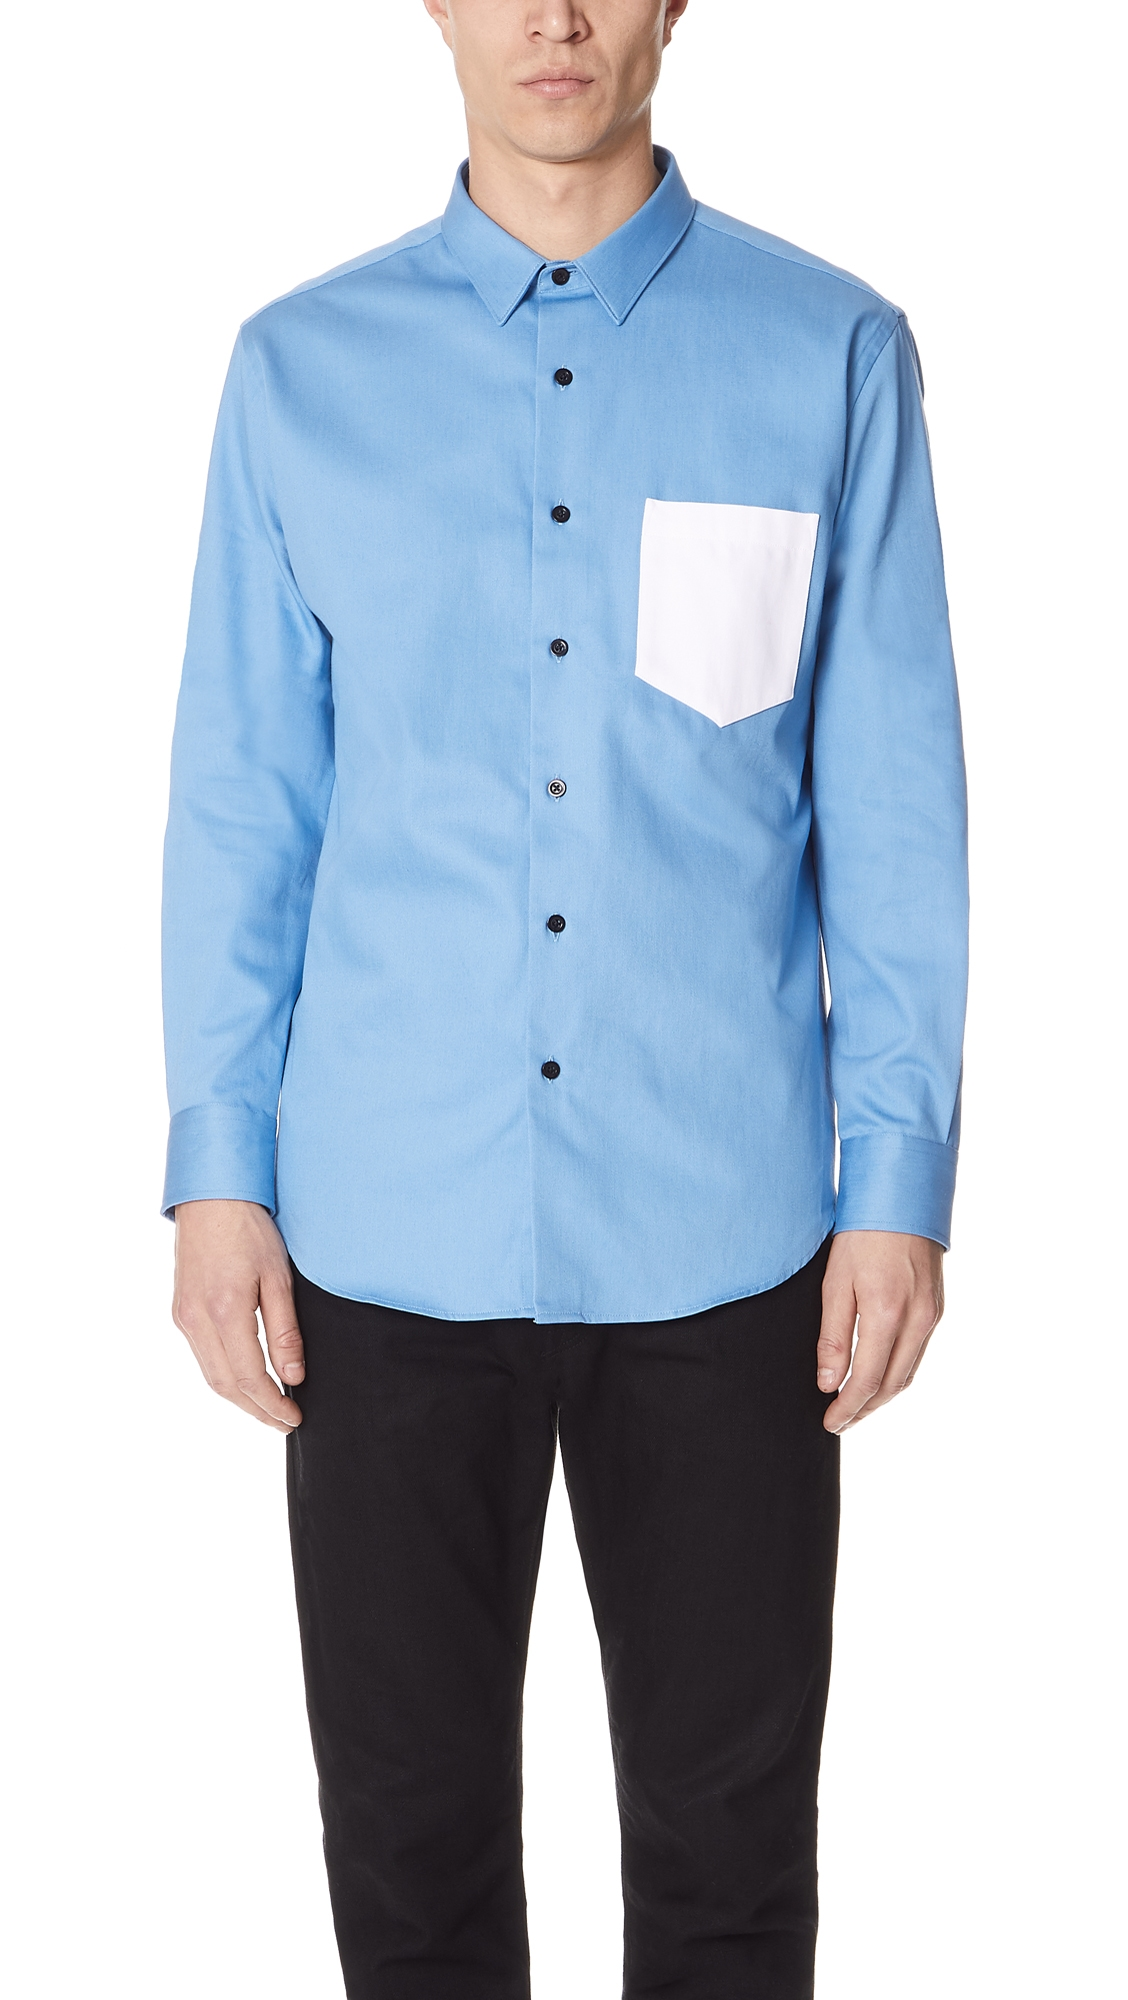 afdf674292b2 Ami Alexandre Mattiussi Summer Fit Shirt With Contrast Pocket In Sky Blue